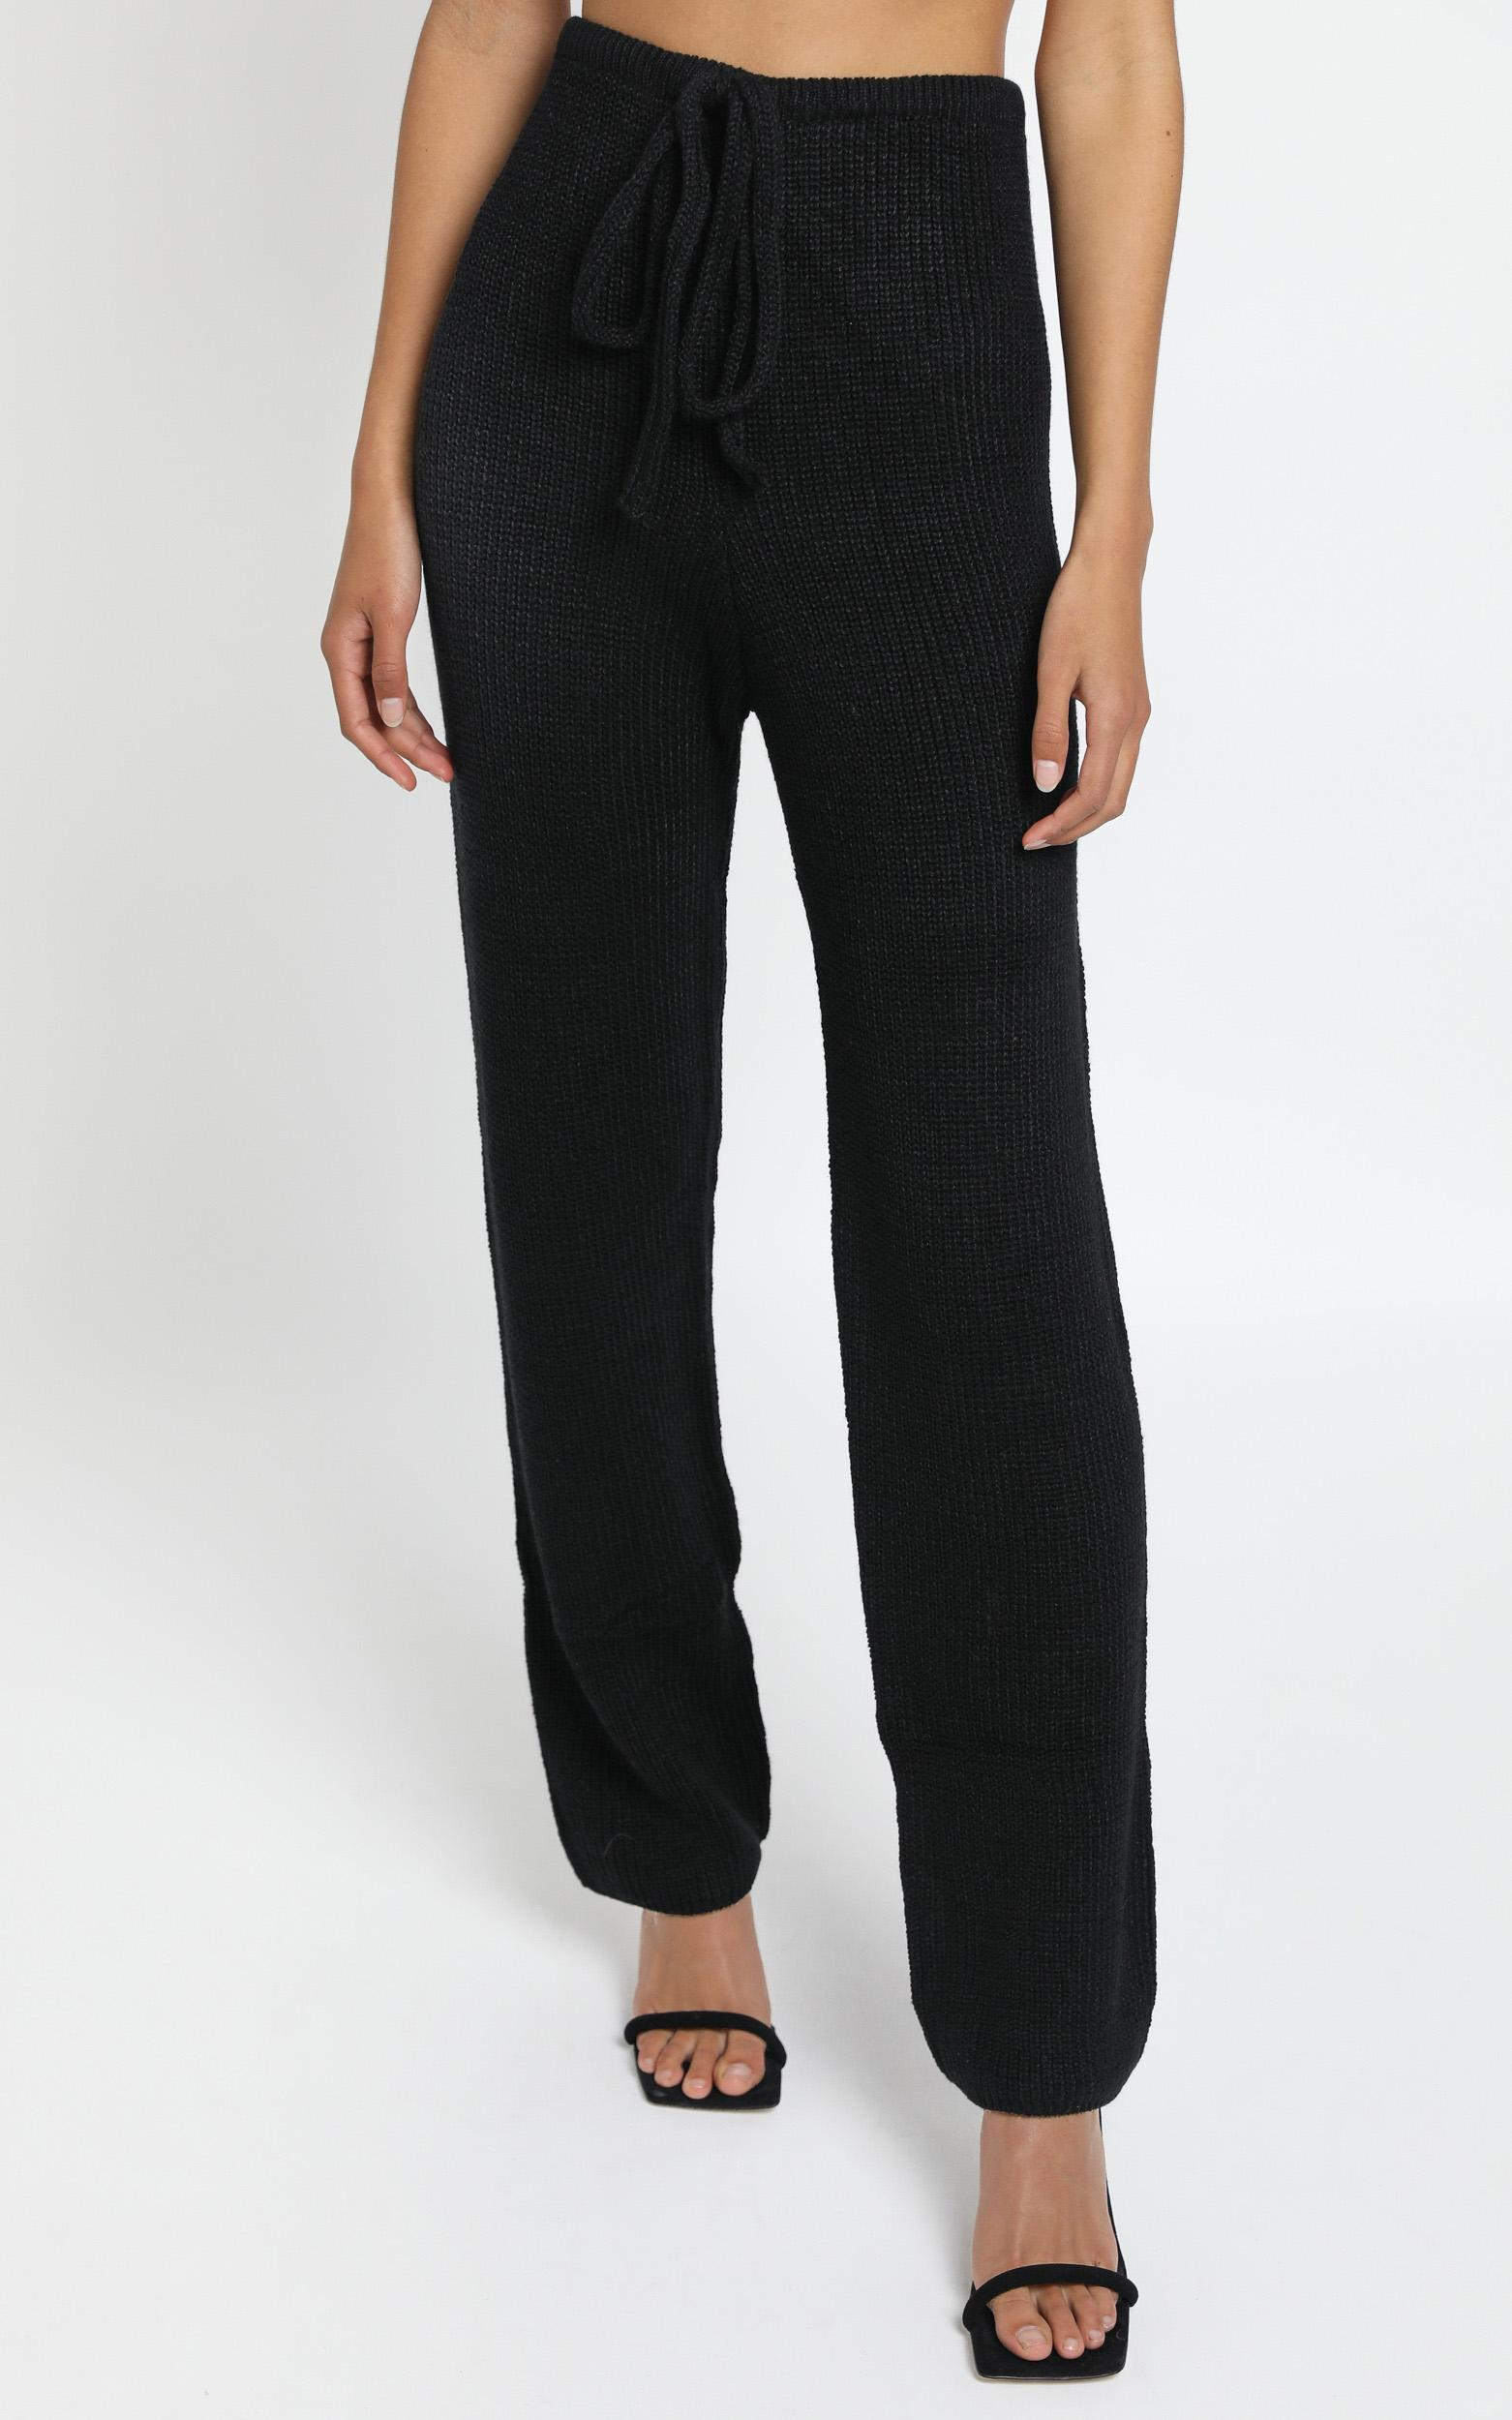 Luxe Lounge Knit Trouser in Black - M/L, BLK1, hi-res image number null